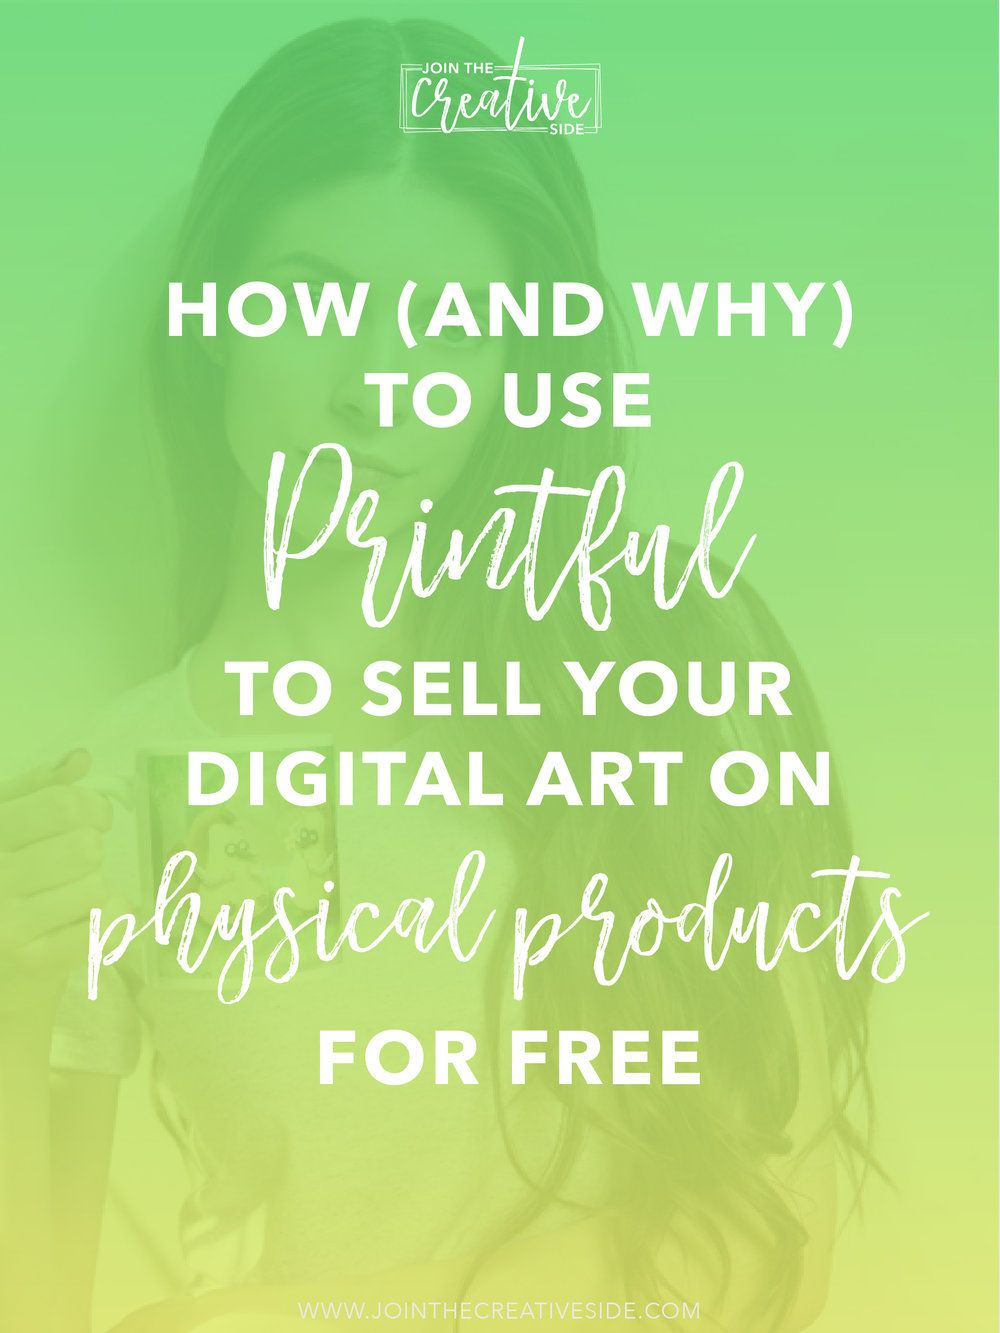 How (And Why) to use Printful to sell your digital art on